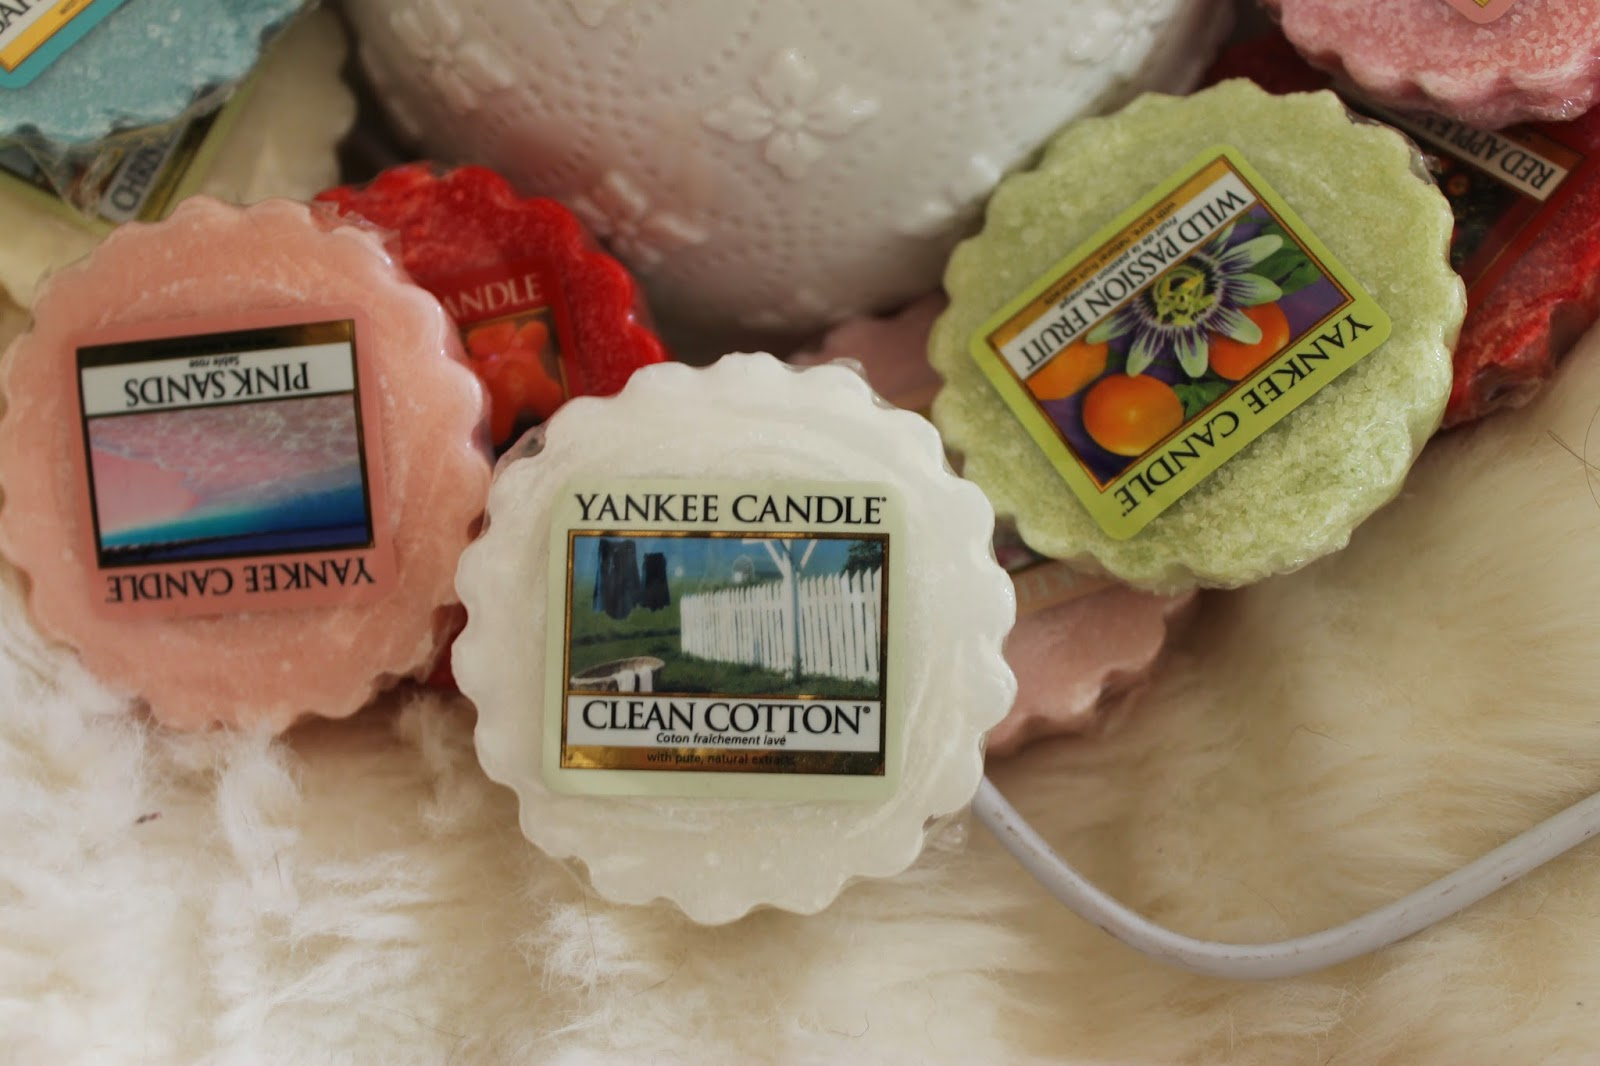 Yankee Candle Electric Melt Warmer and Tartlets